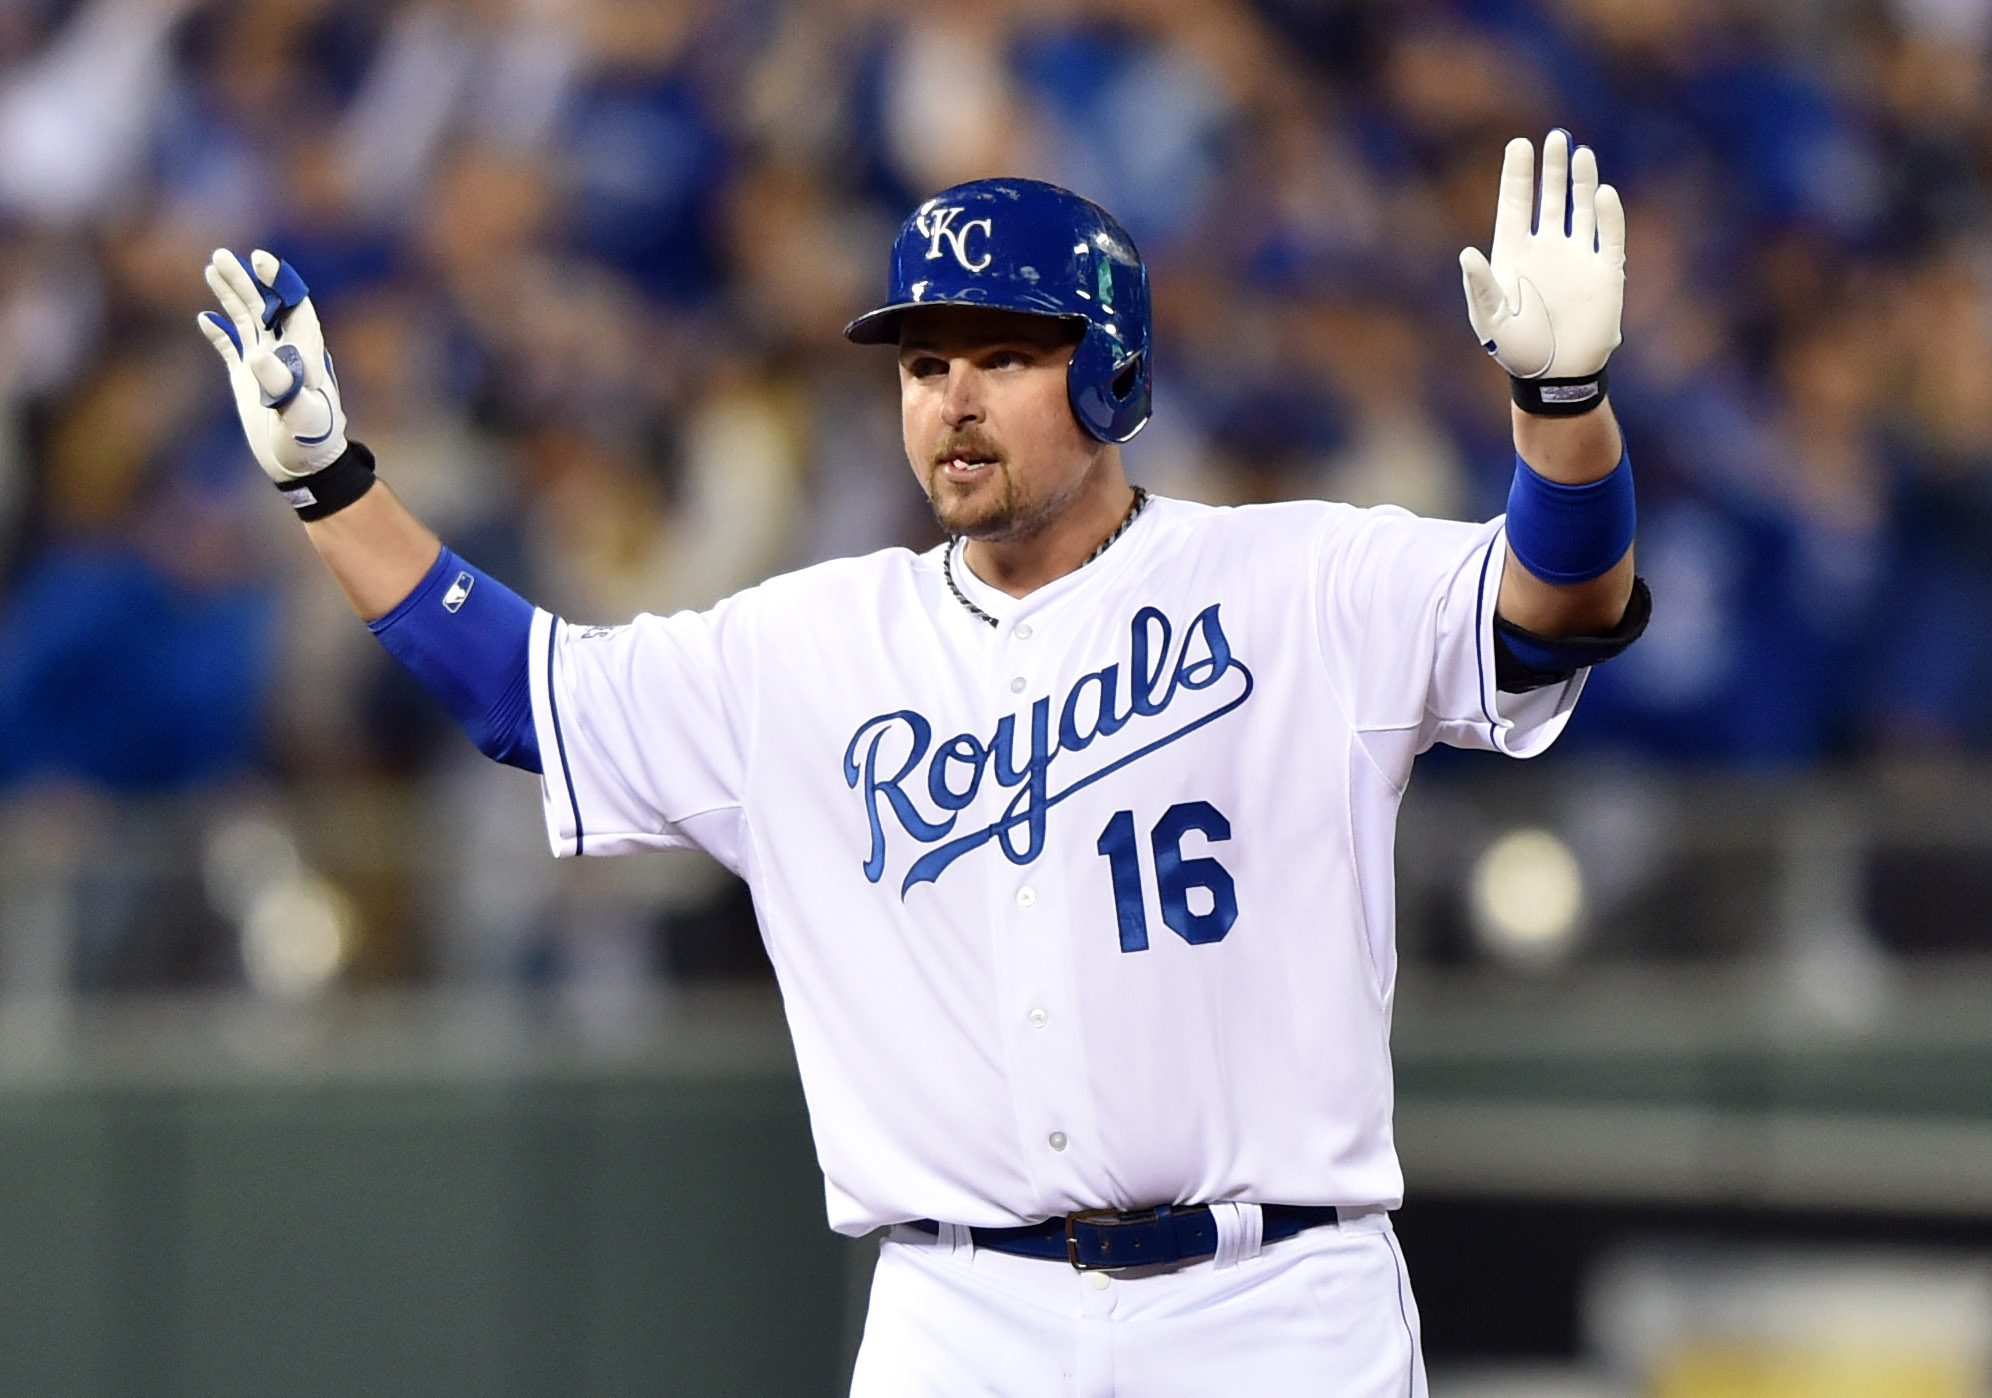 Billy Butler reacts after hitting a RBI double against the  Giants in game six. (USAT)